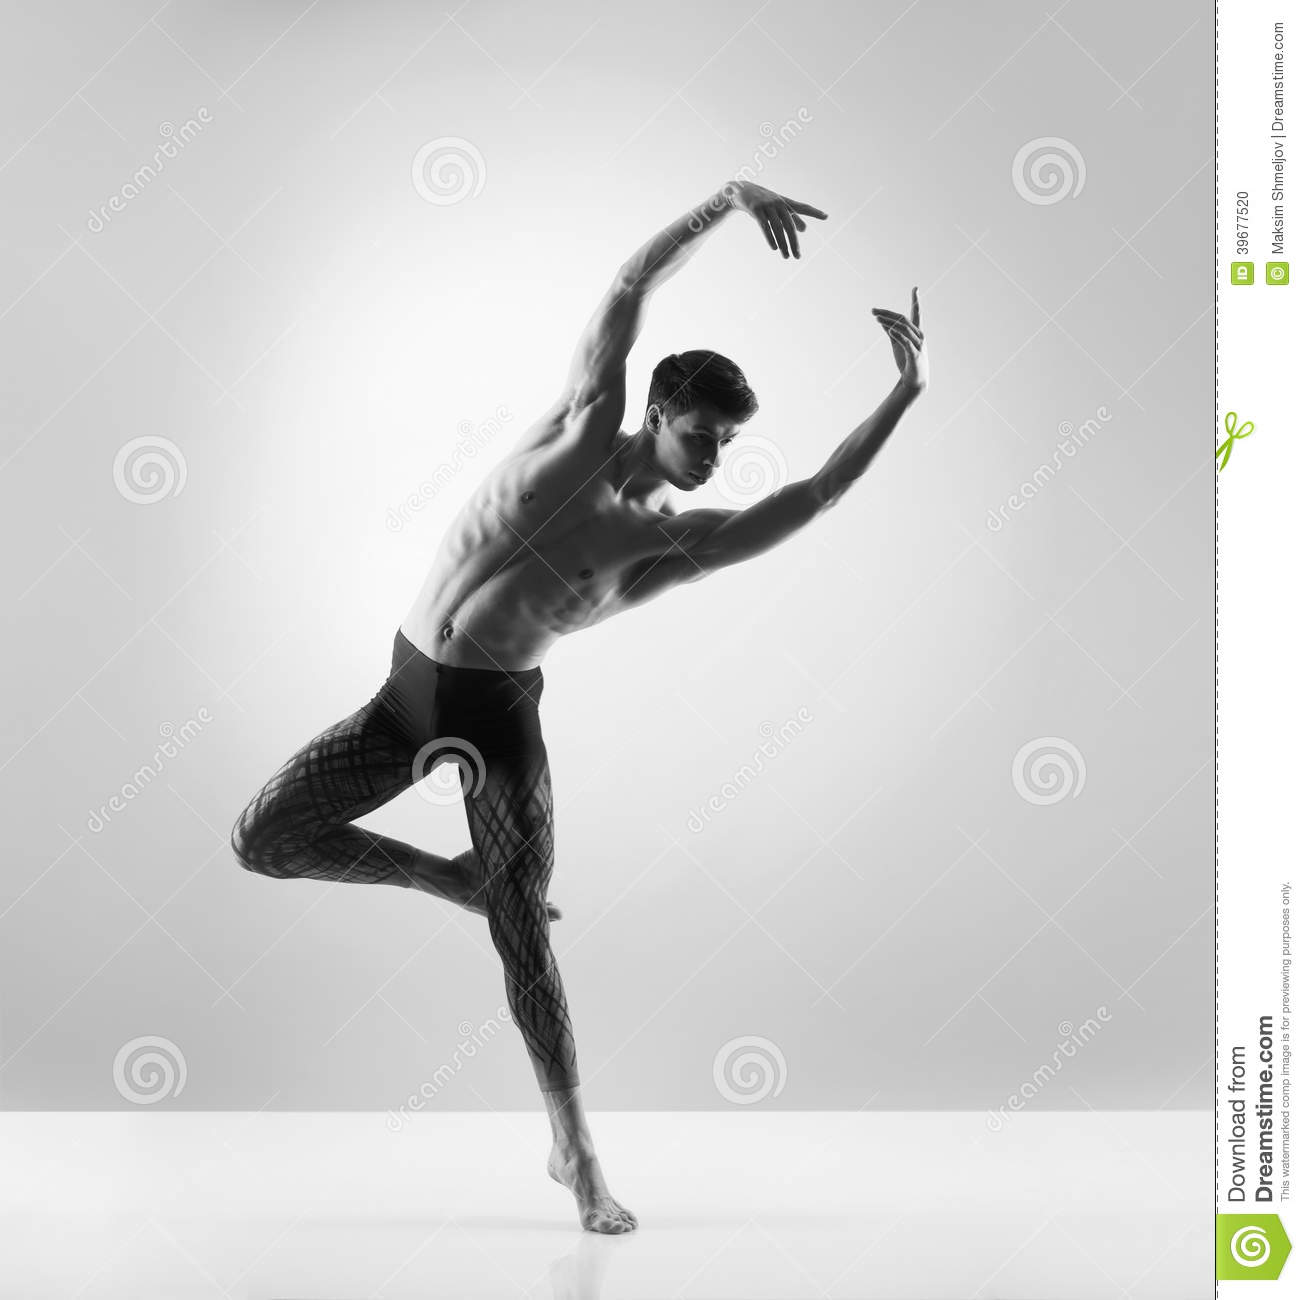 ... , handsome, sporty and athletic ballet dance. Black and white image